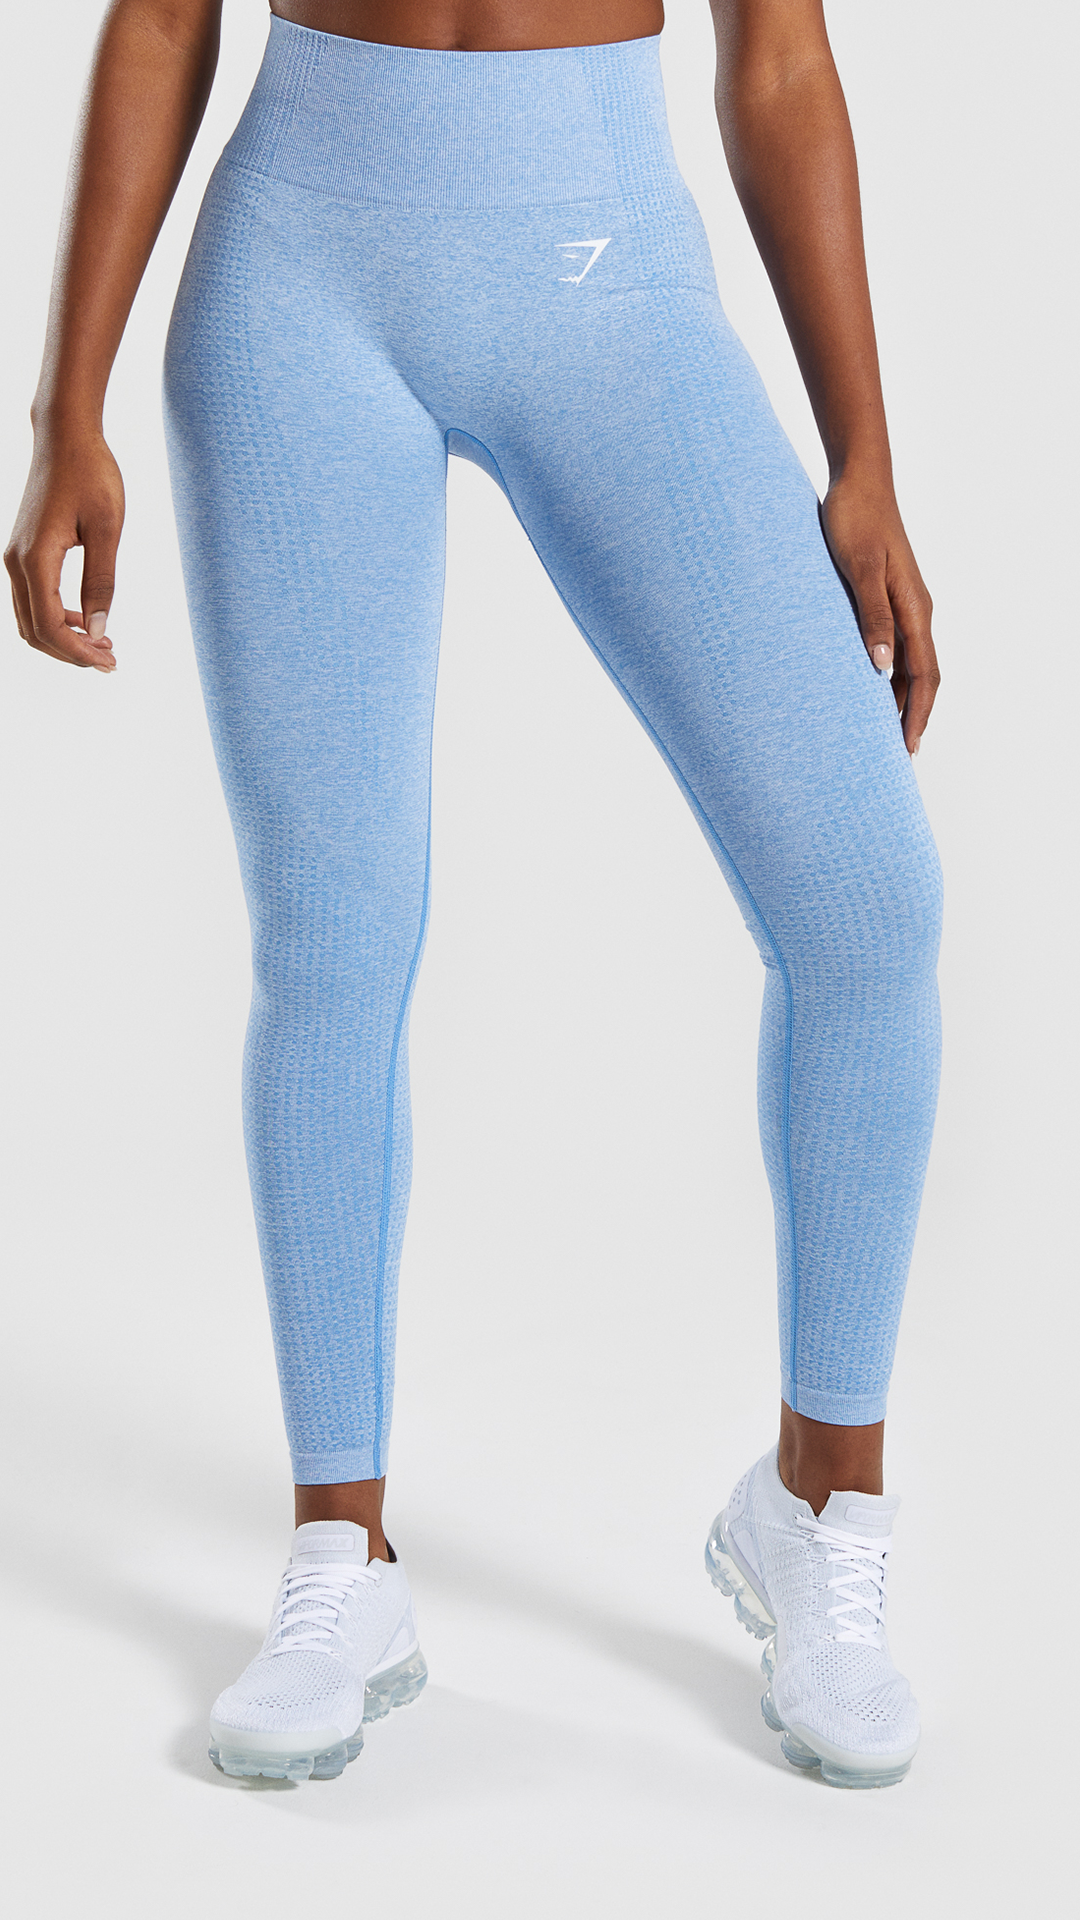 81c701a98b73c4 The Vital Seamless Leggings, Malibu Blue Marl. Empowered through strength. # Gymshark #Gym #Sweat #Train #Perform #Seamless #Exercise #Strength #Strong  ...